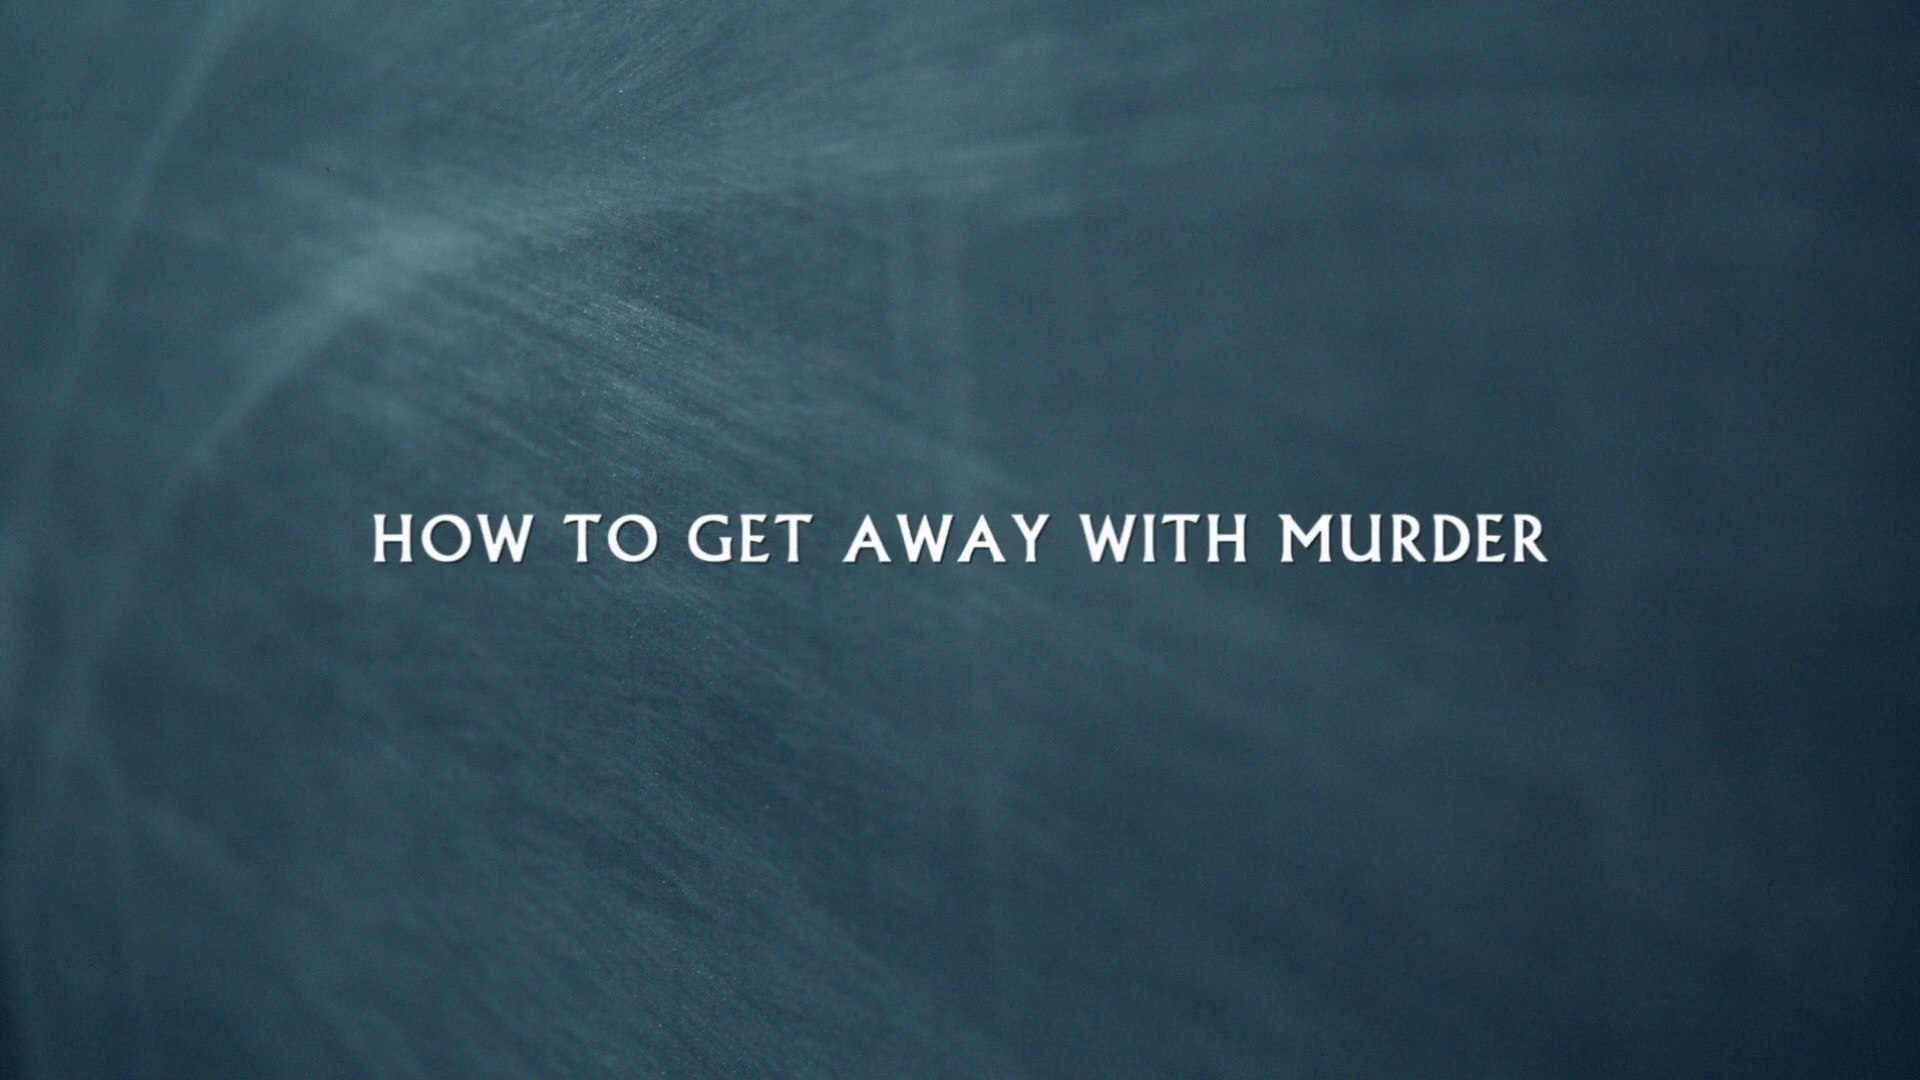 How To Get Away With Murder  How To Get Away With Murder Wiki  Fandom  Powered By Wikia